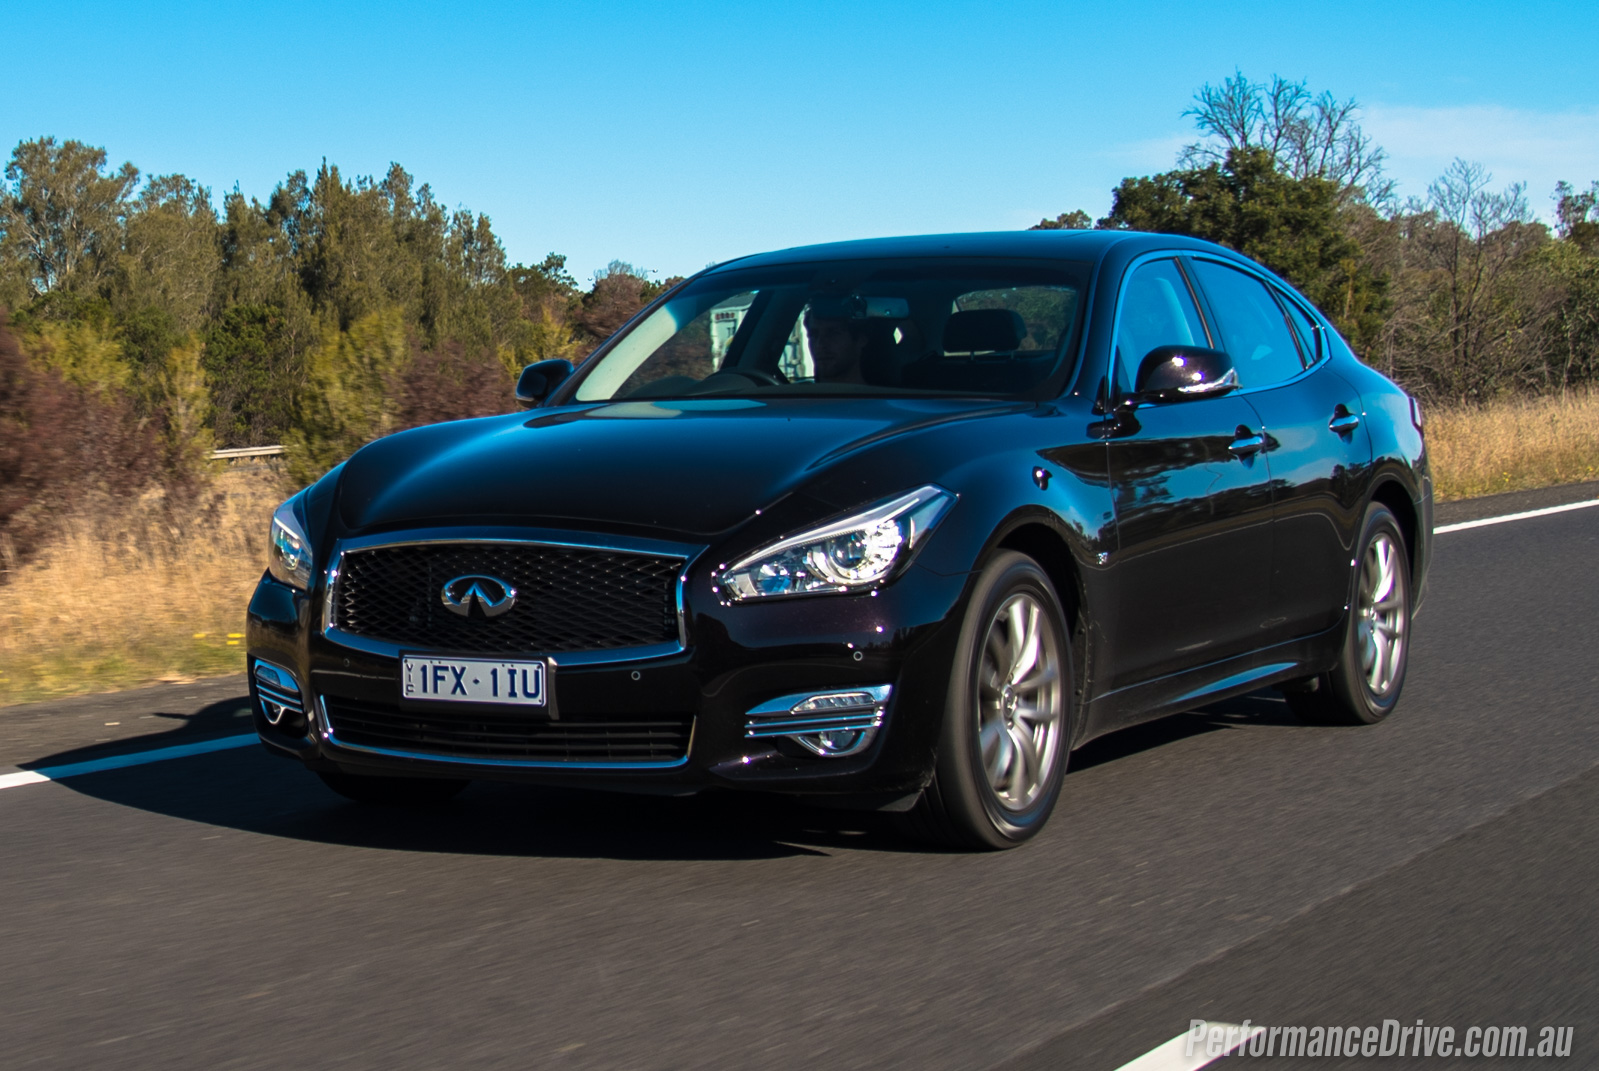 2016 infiniti q70 gt 3 7 review video performancedrive. Black Bedroom Furniture Sets. Home Design Ideas